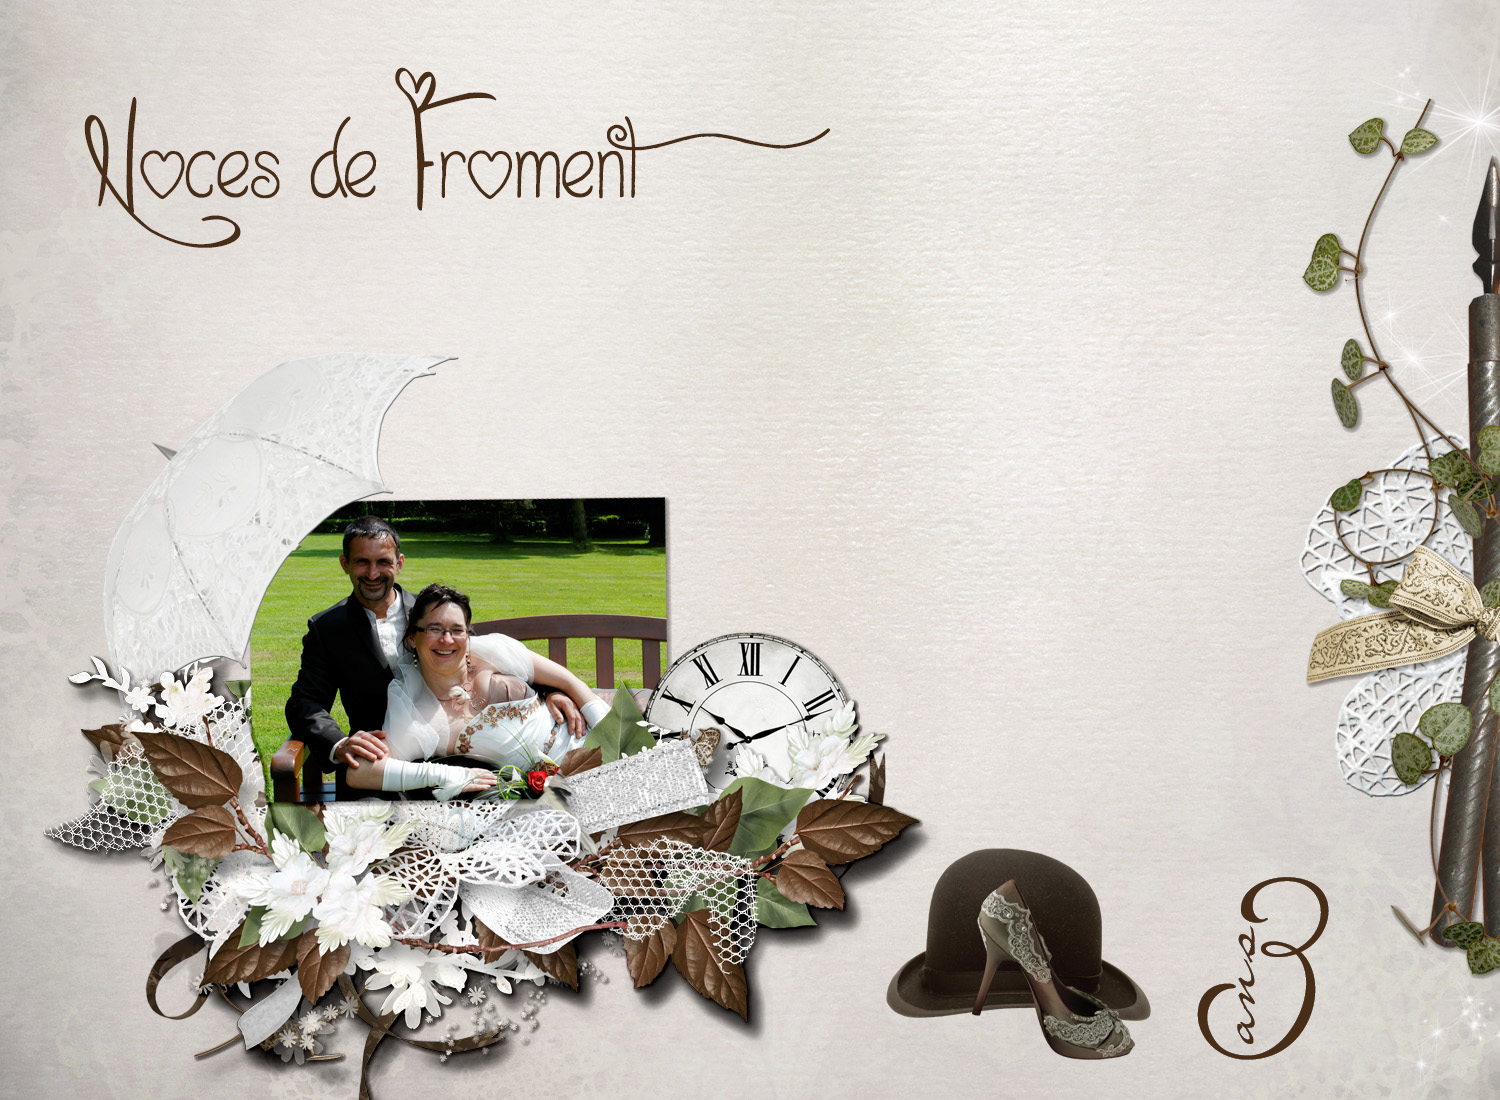 noces-de-froment